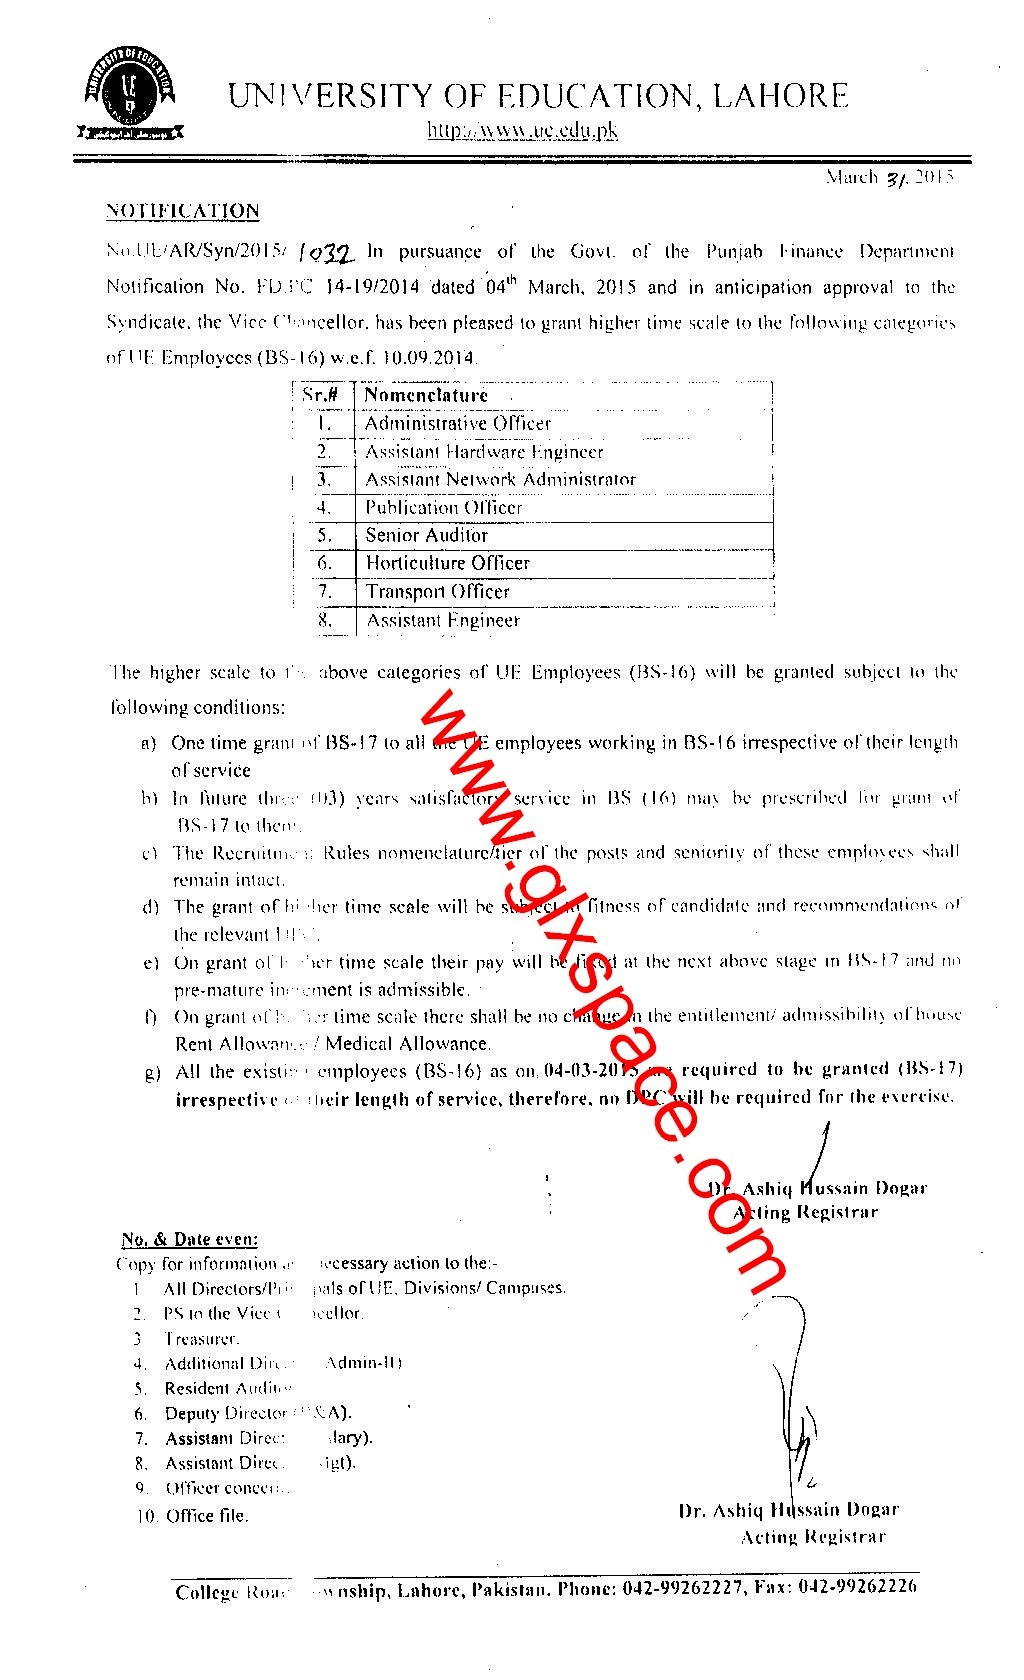 Upgradation Administration Officer